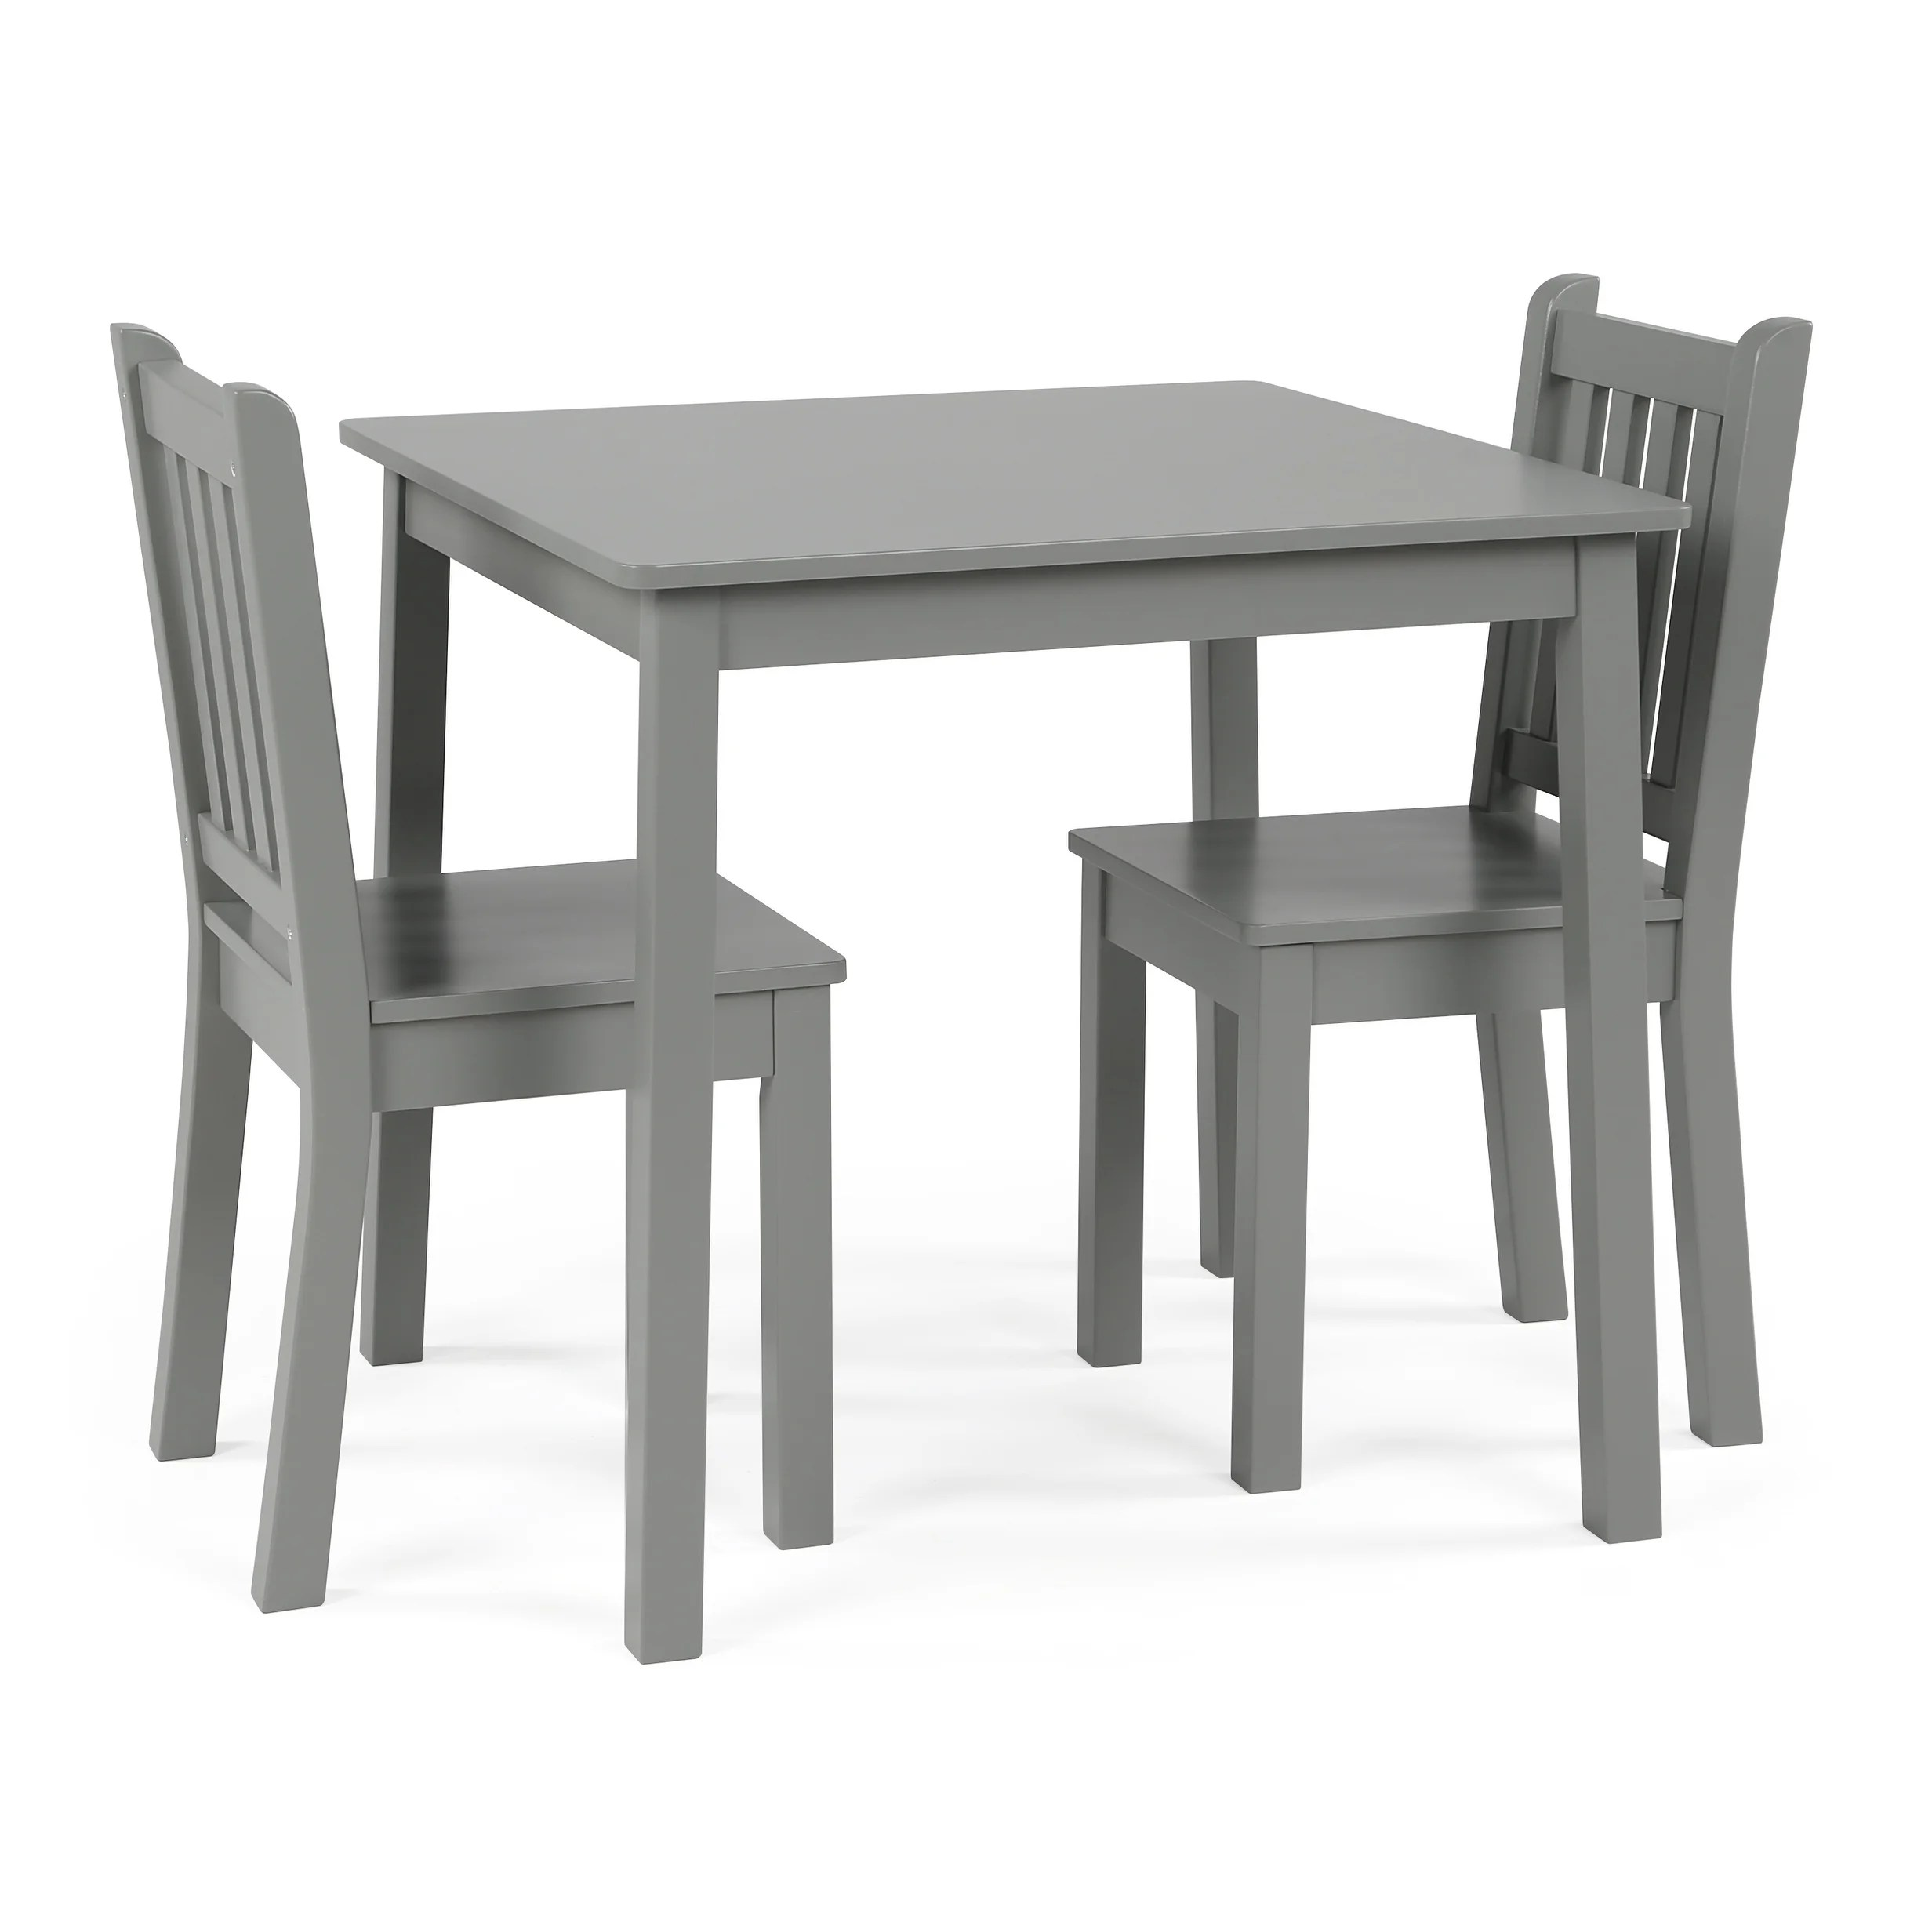 3 piece table and chair set best glider chairs shop wood kids grey free shipping